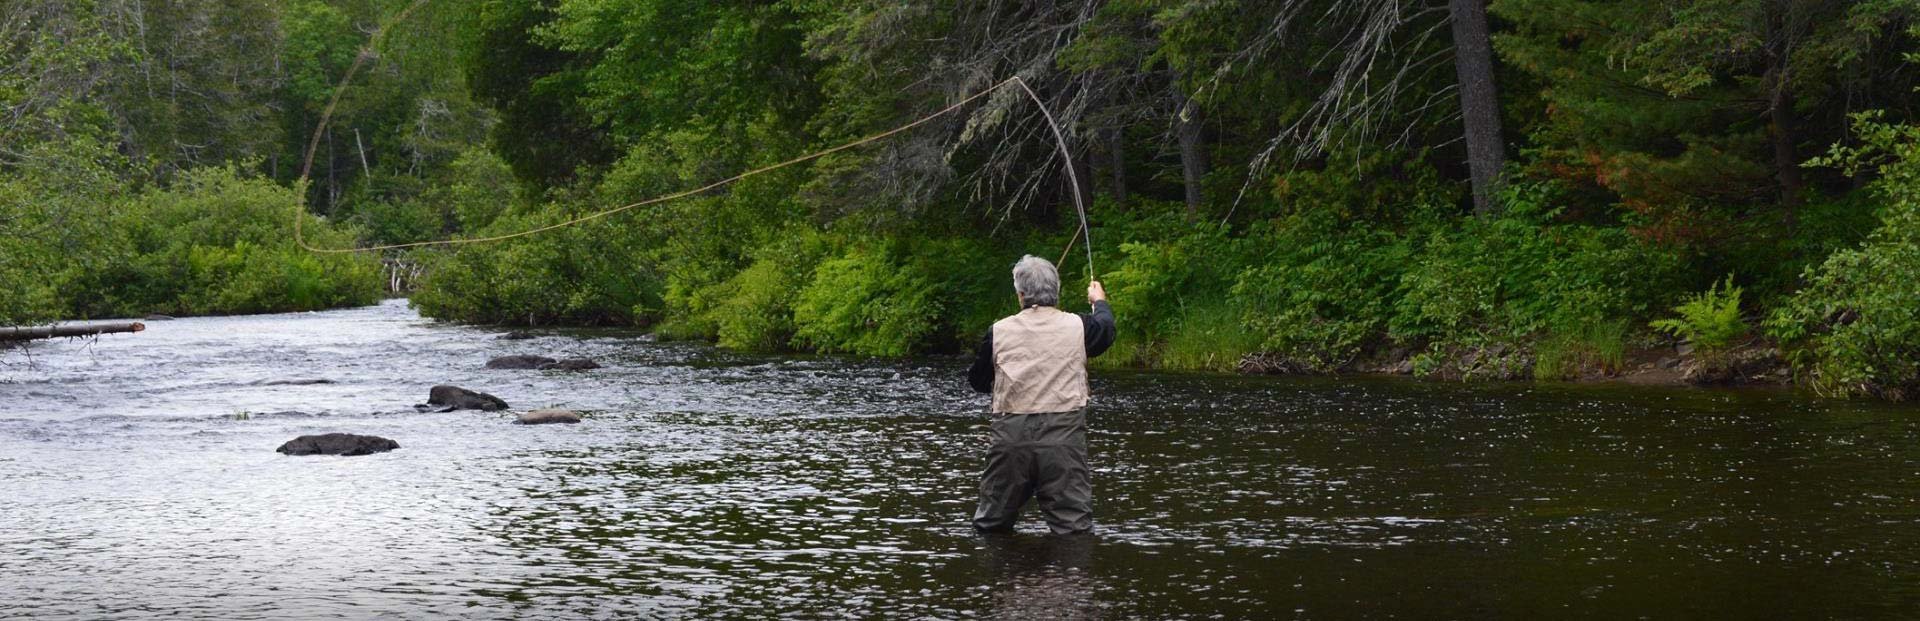 Maine Fishing Trips - Spaulding Lake Outfitters